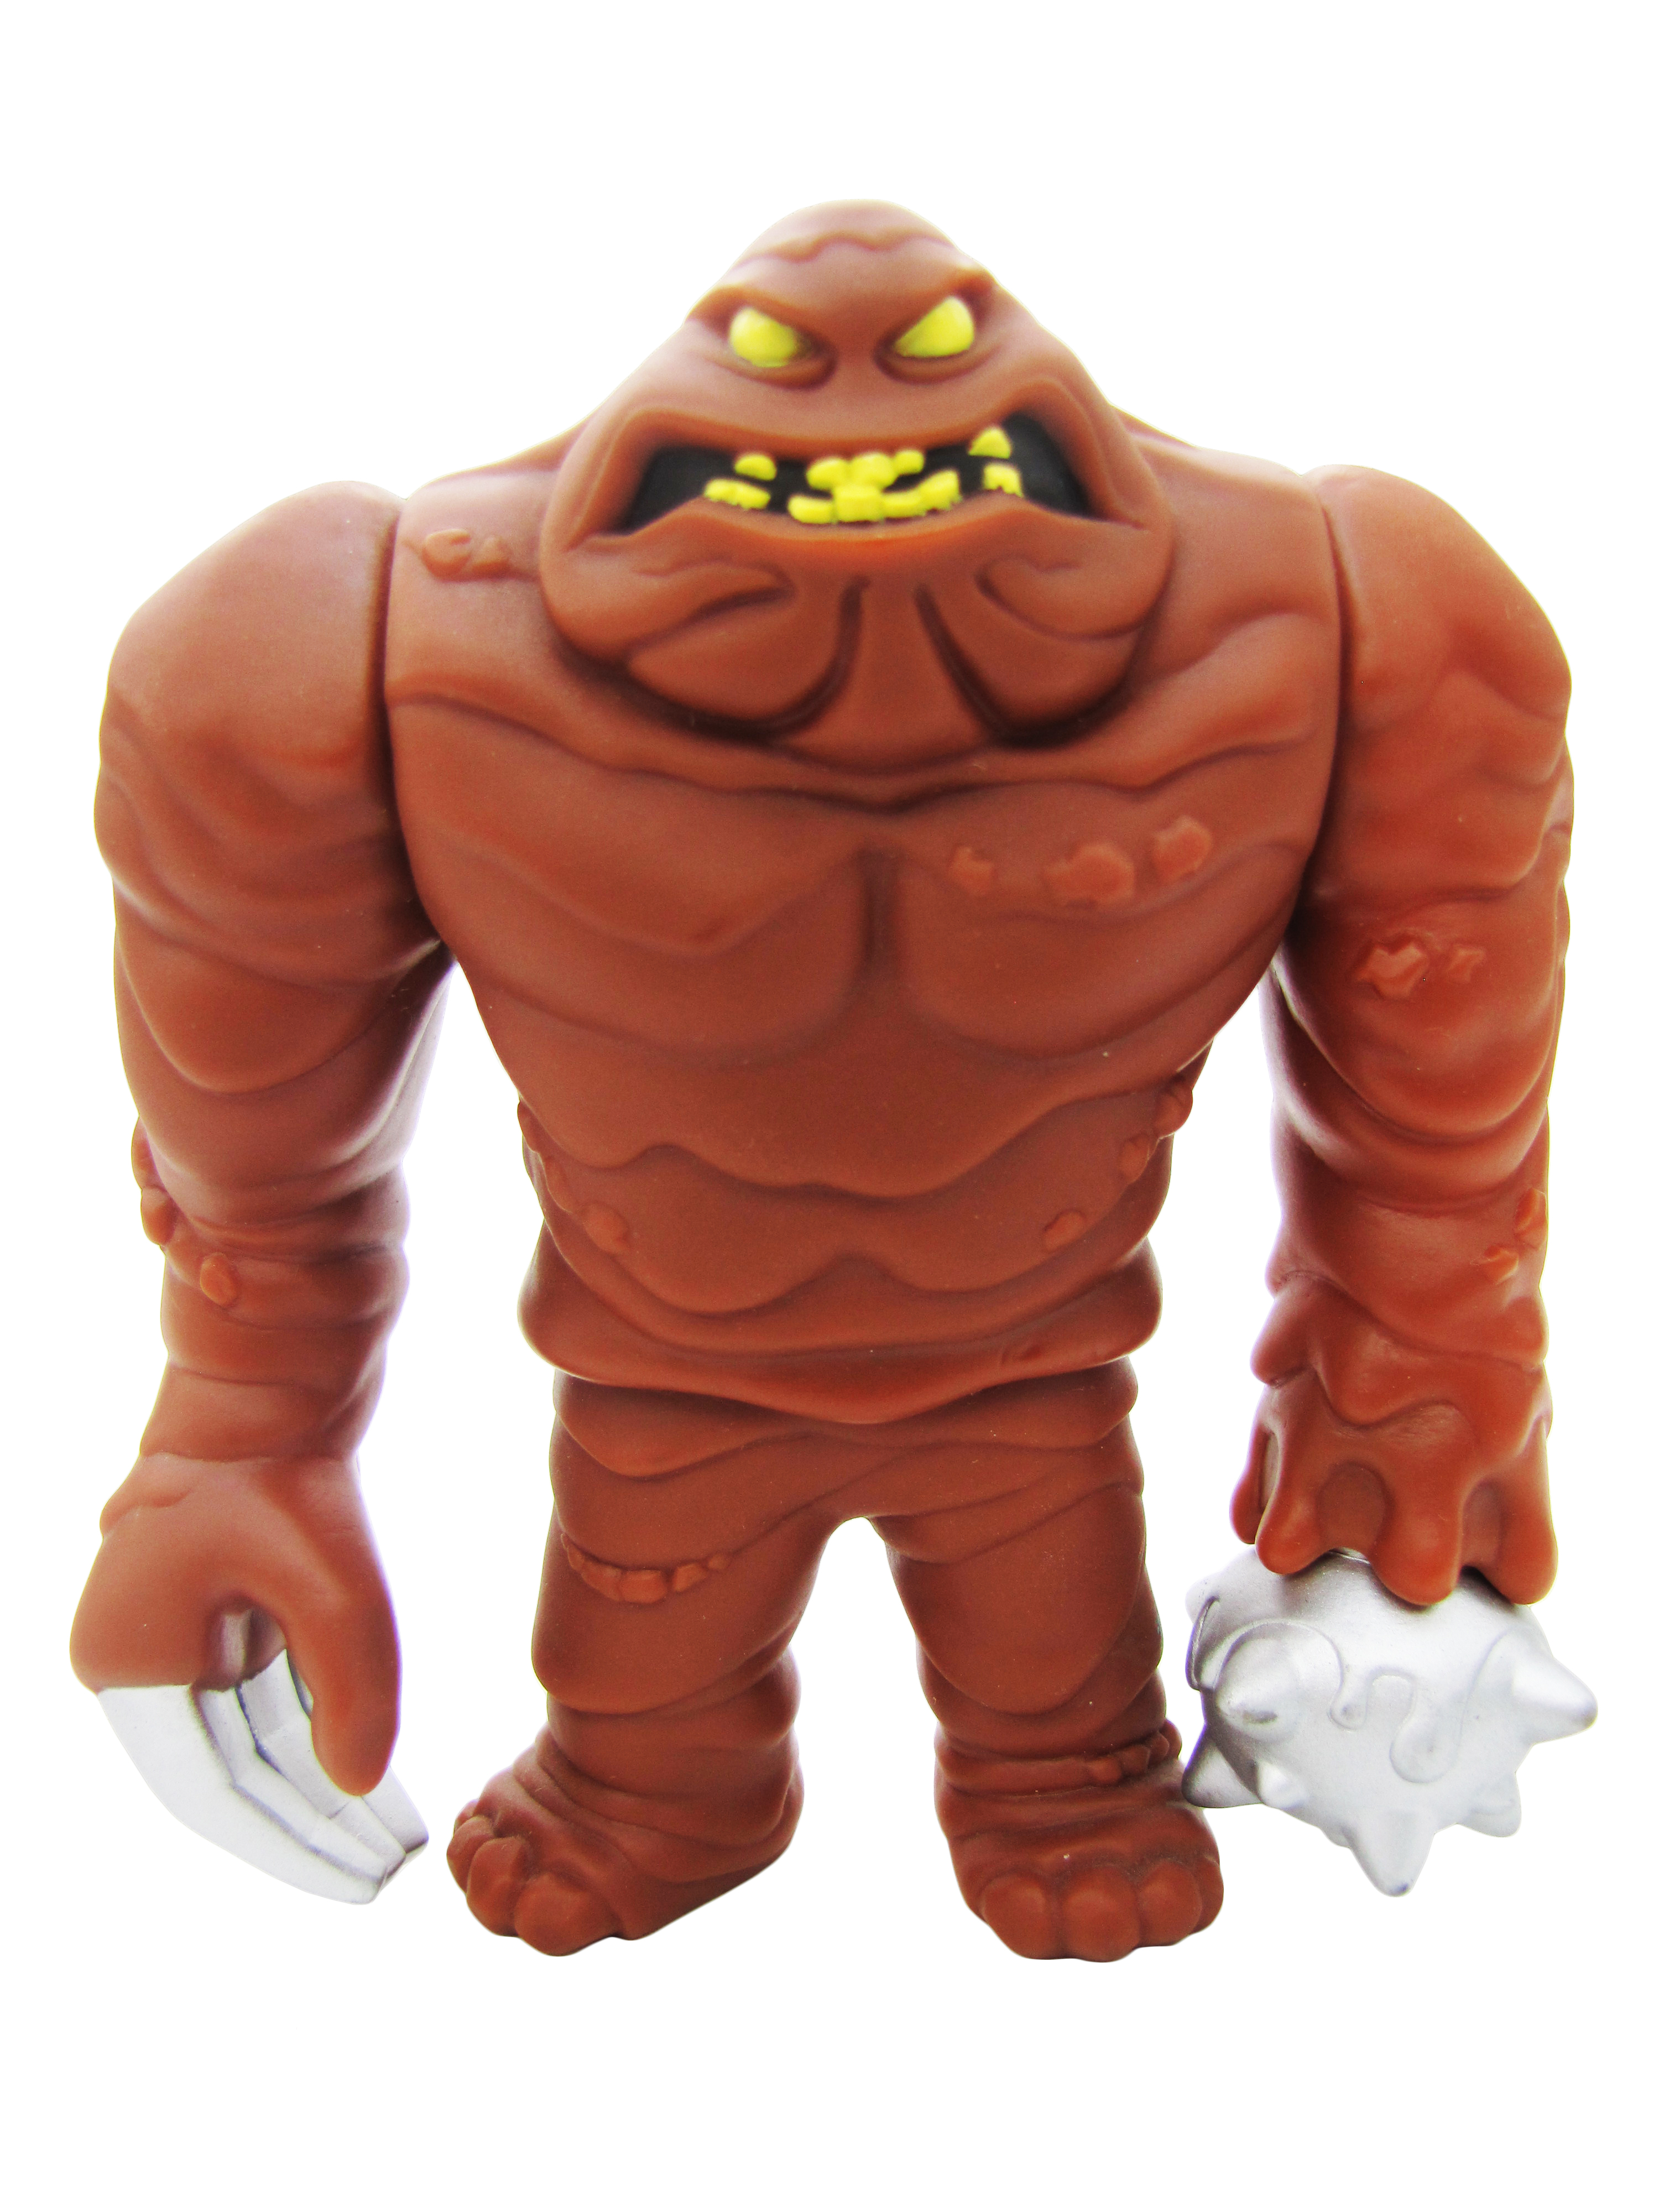 1993 Batman The Animated Series CLAYFACE Complete Mint